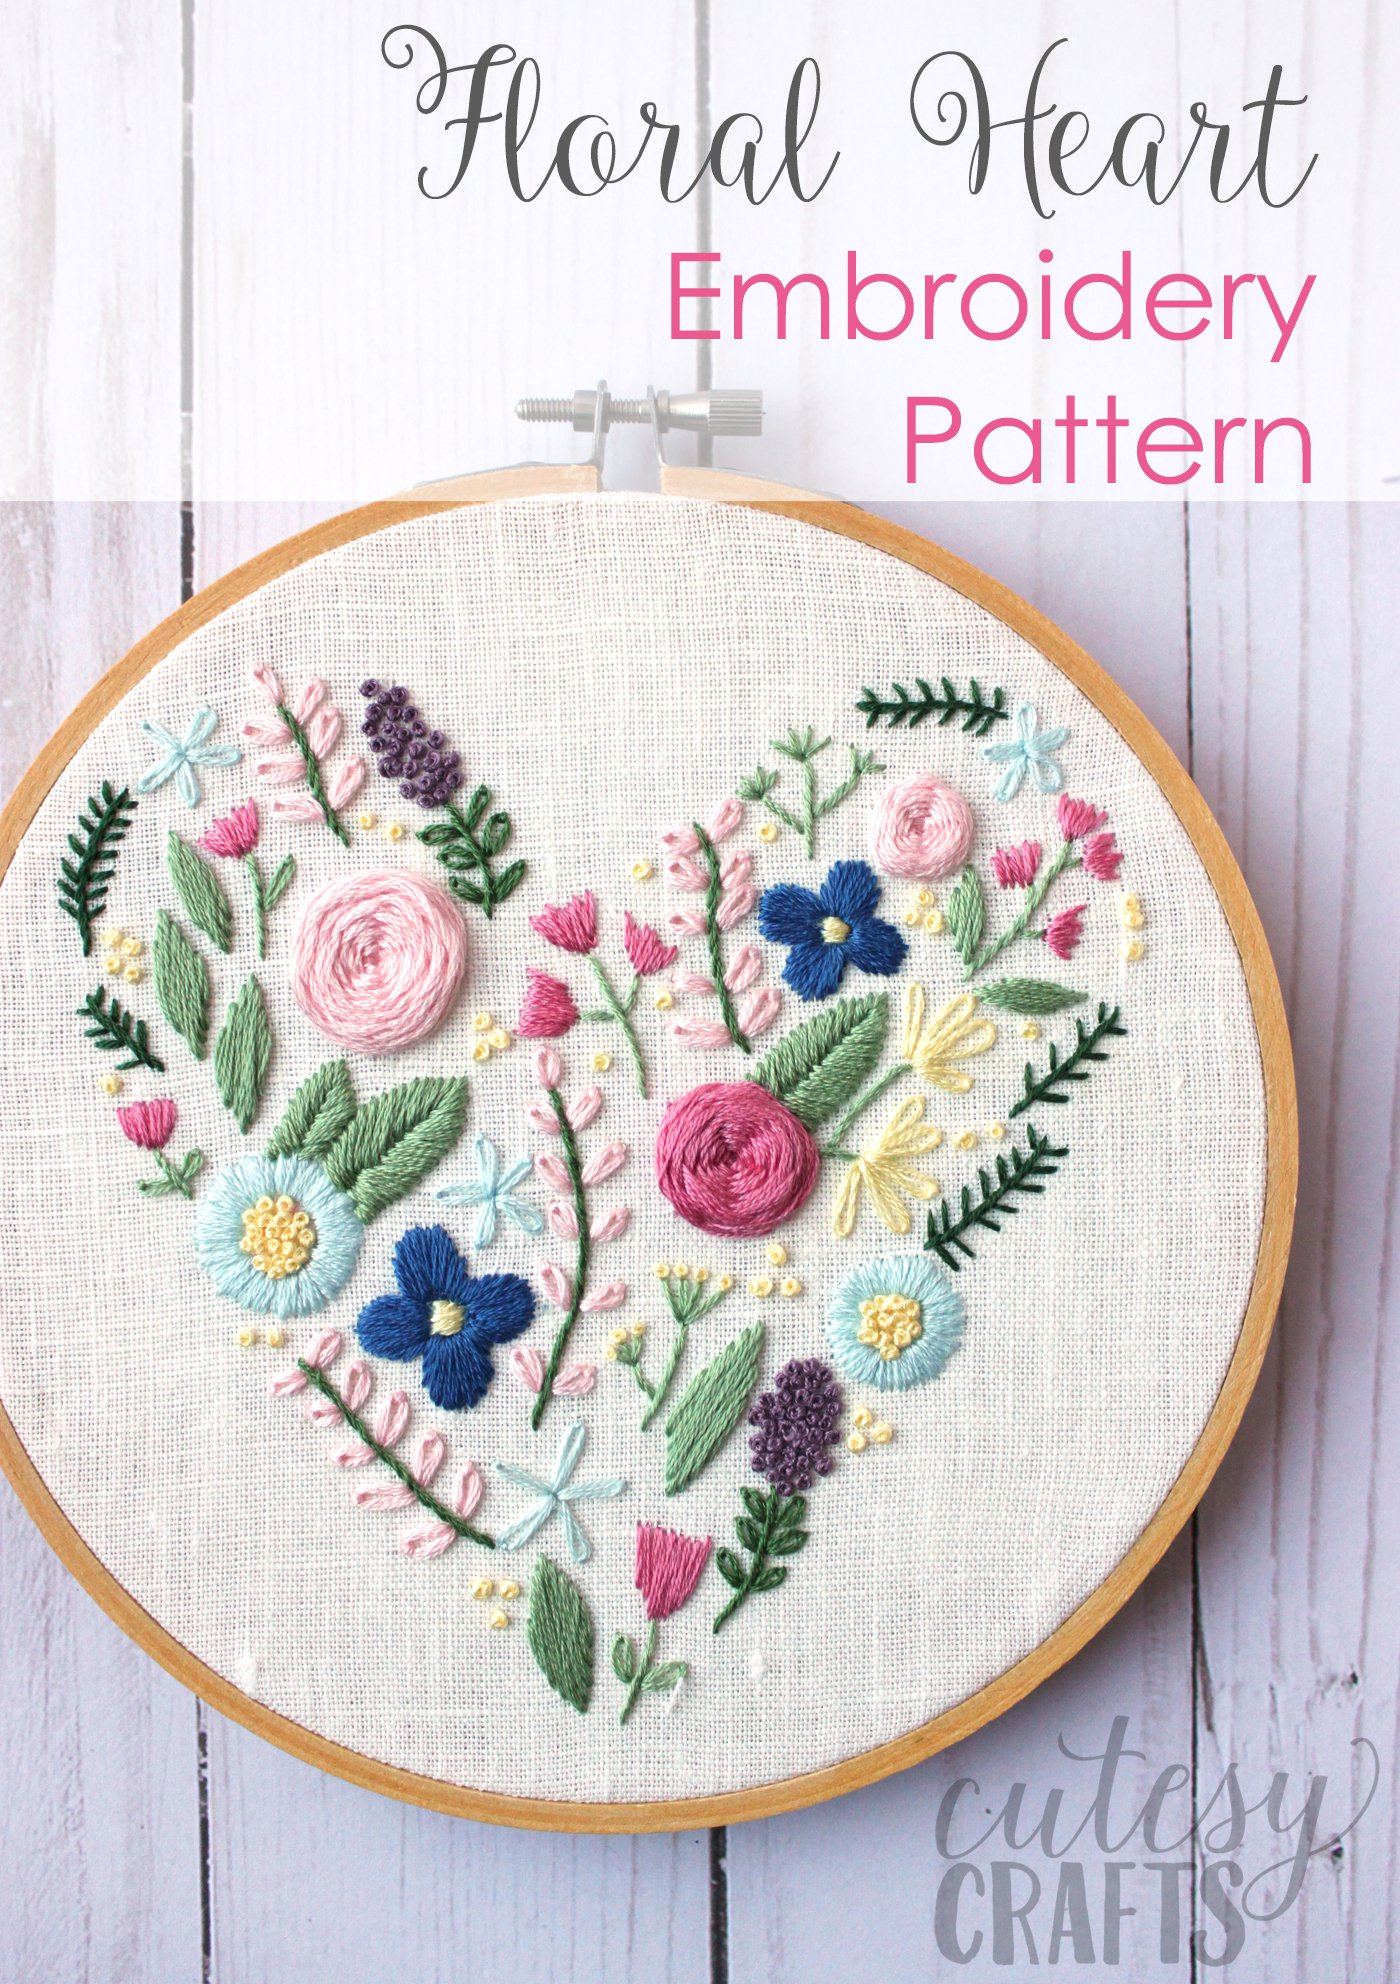 Rose Patterns For Embroidery Floral Heart Hand Embroidery Pattern The Polka Dot Chair